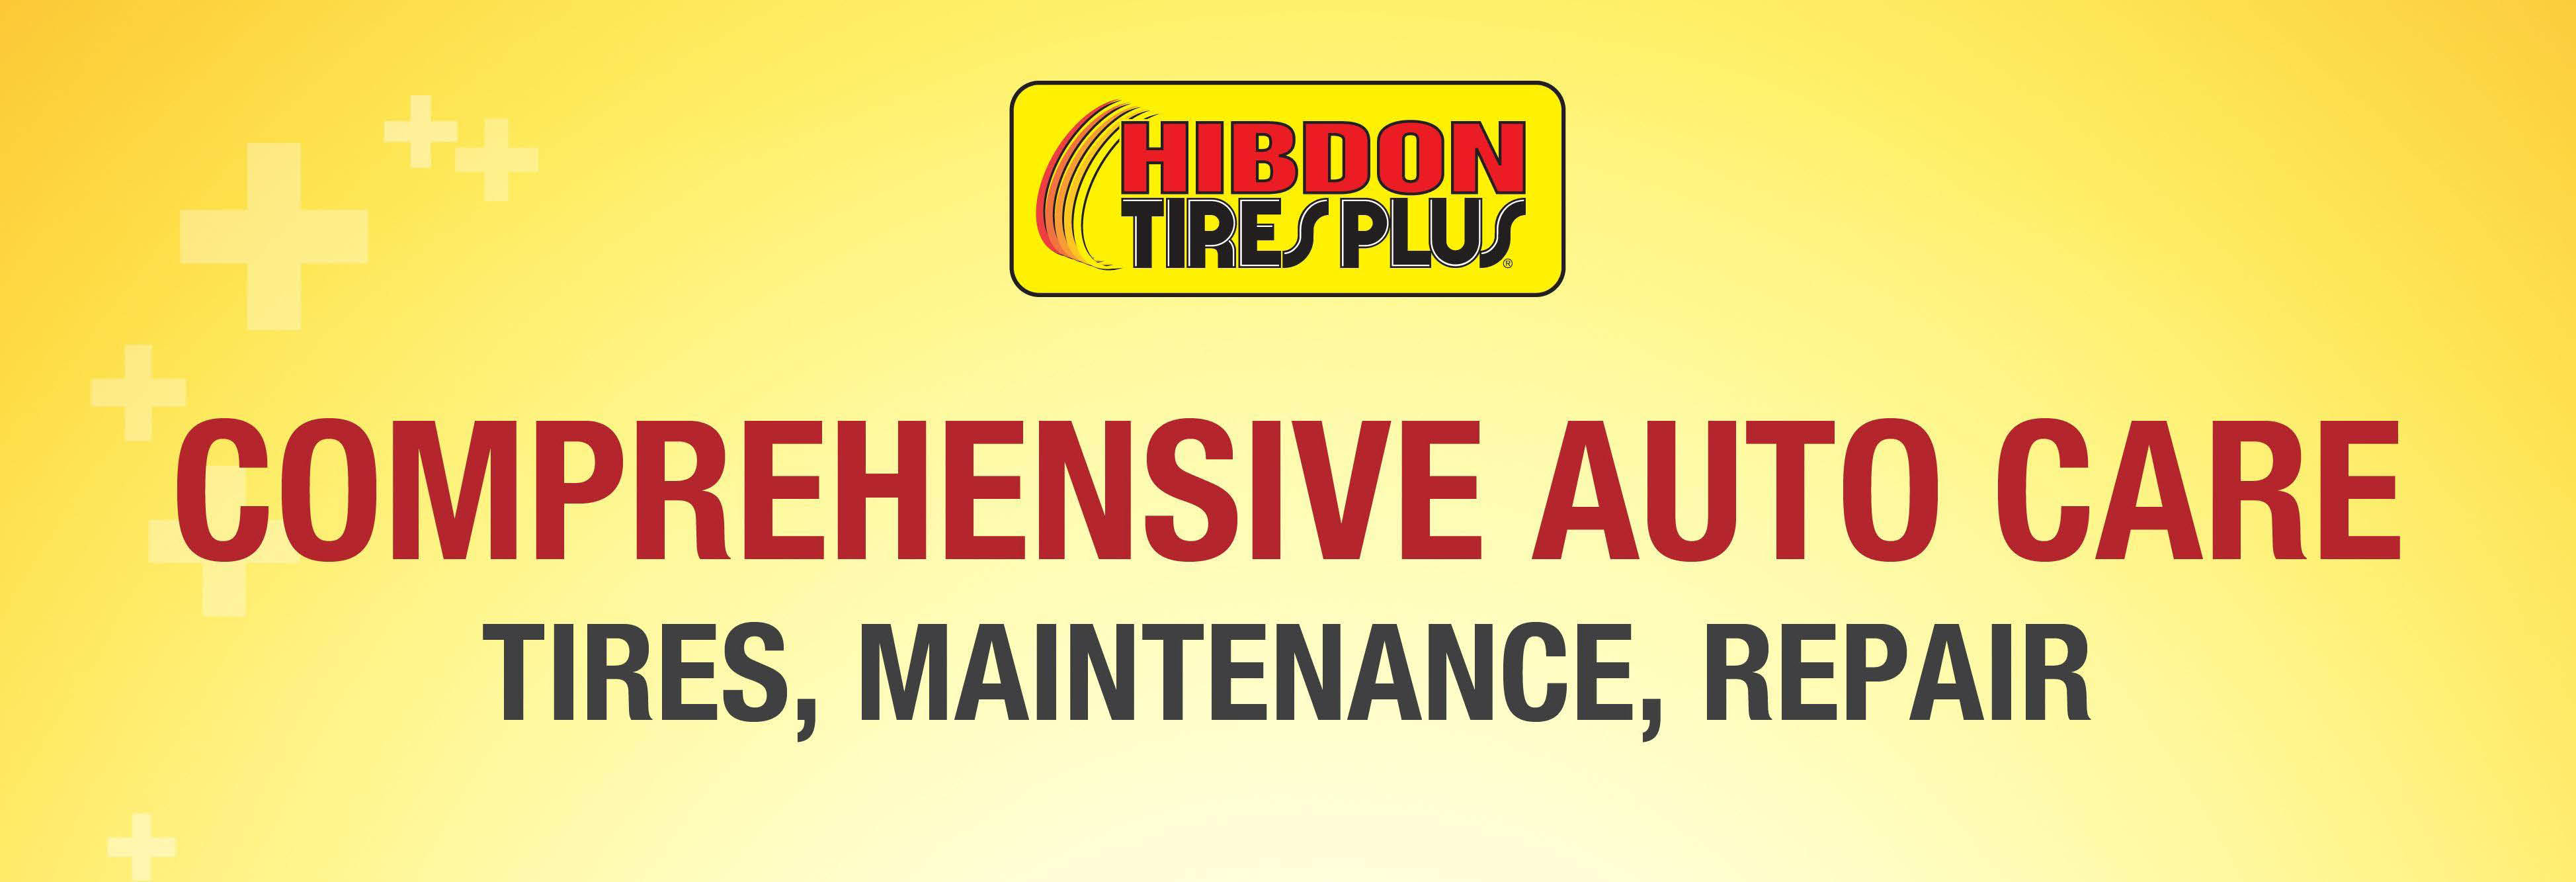 Hibdon tires plus tulsa